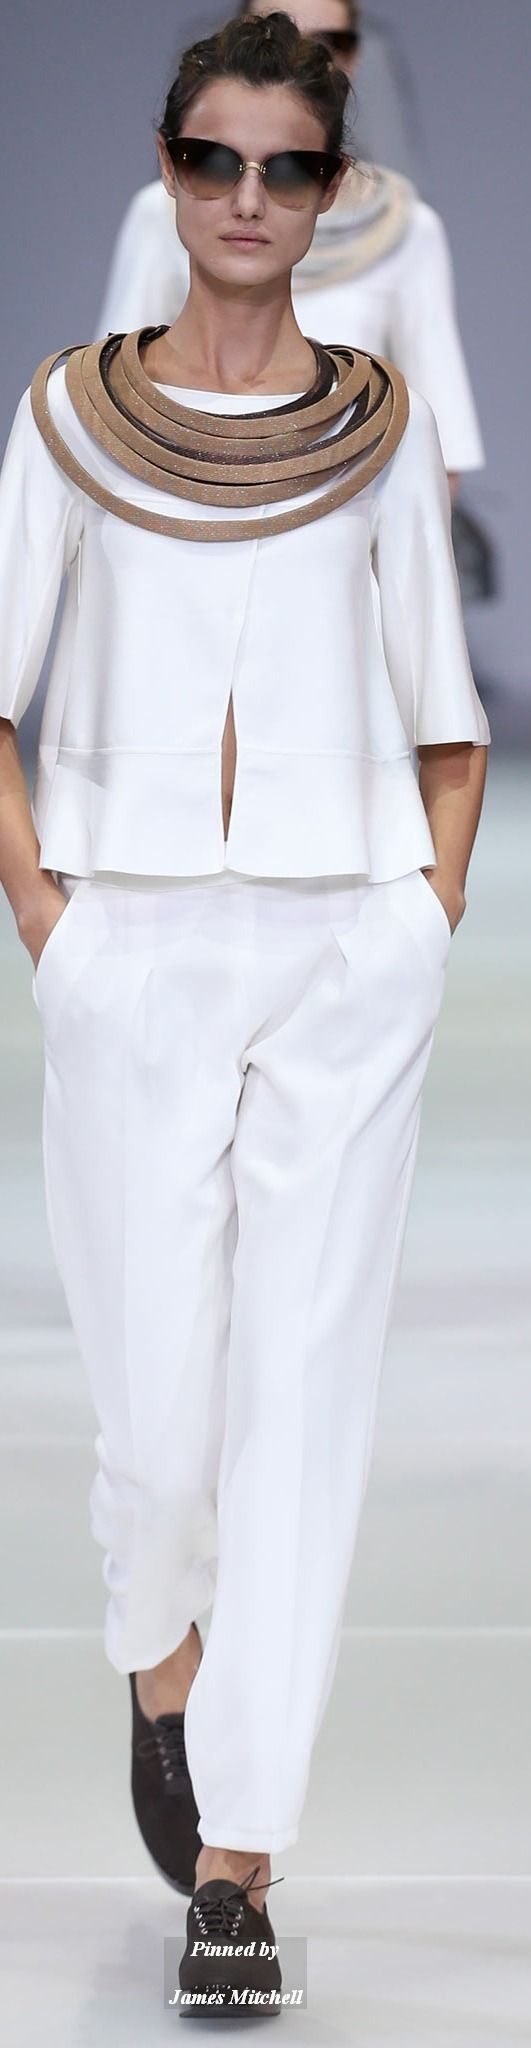 Giorgio Armani Collection Spring 2015 Ready to Wear